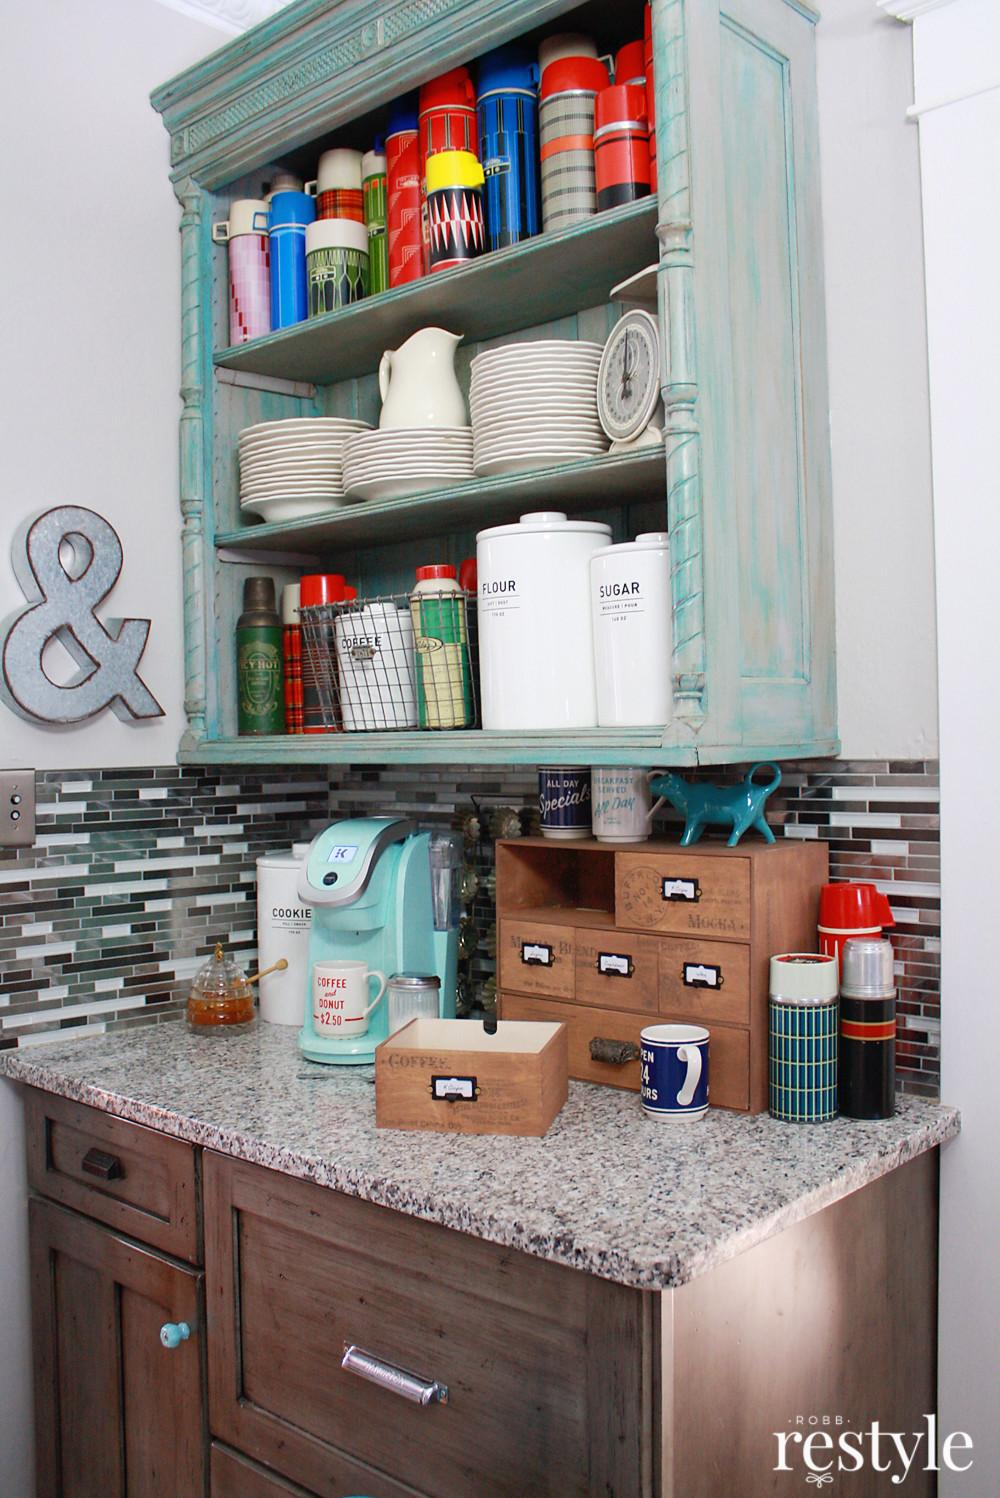 Moppe Hack Coffee Storage Idea Robb Restyle